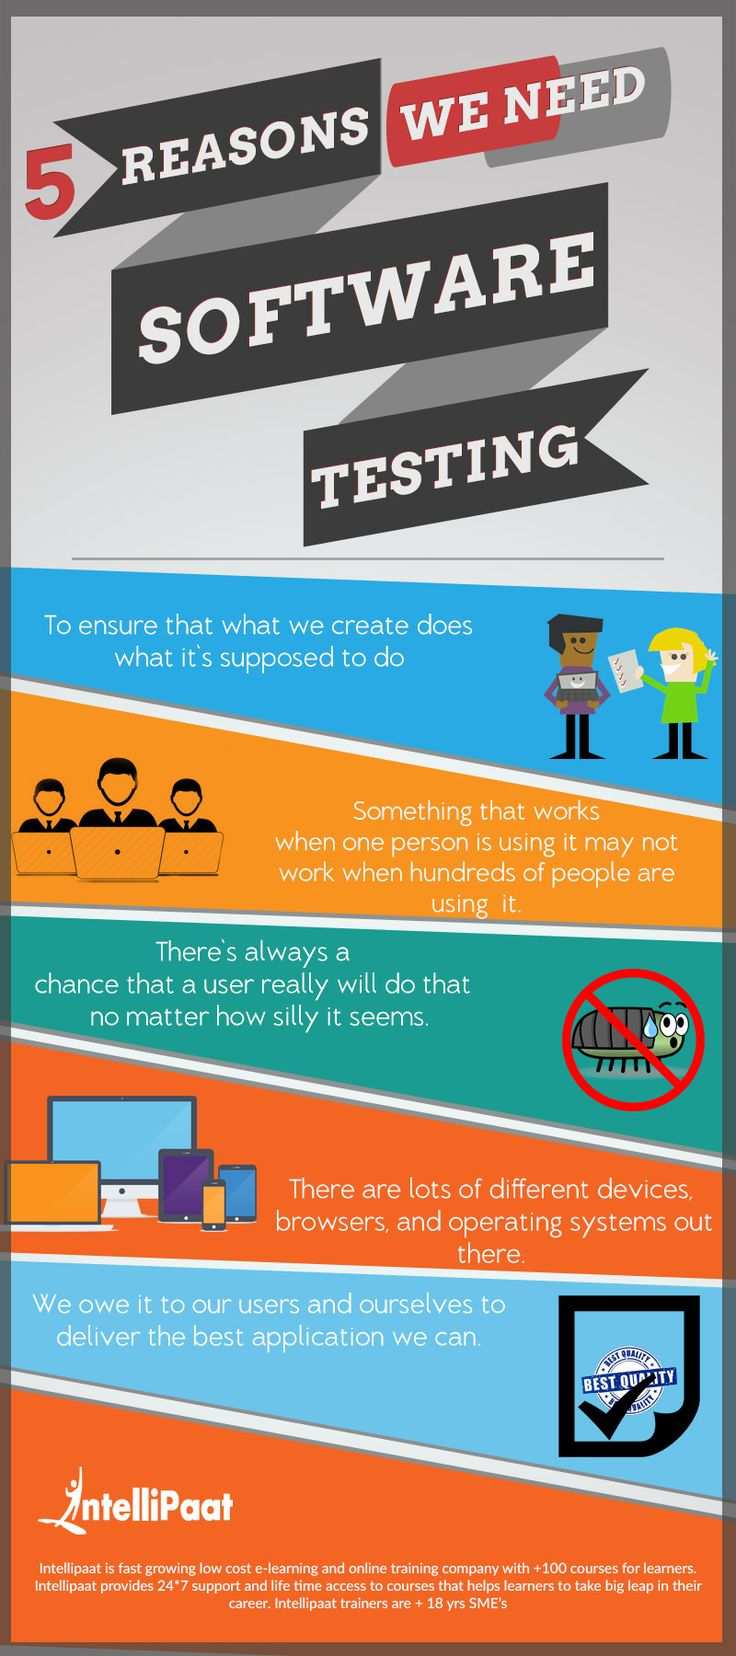 5 Reasons We Need for Software Testing Infographic - http://elearninginfographics.com/5-reasons-need-software-testing-infographic/